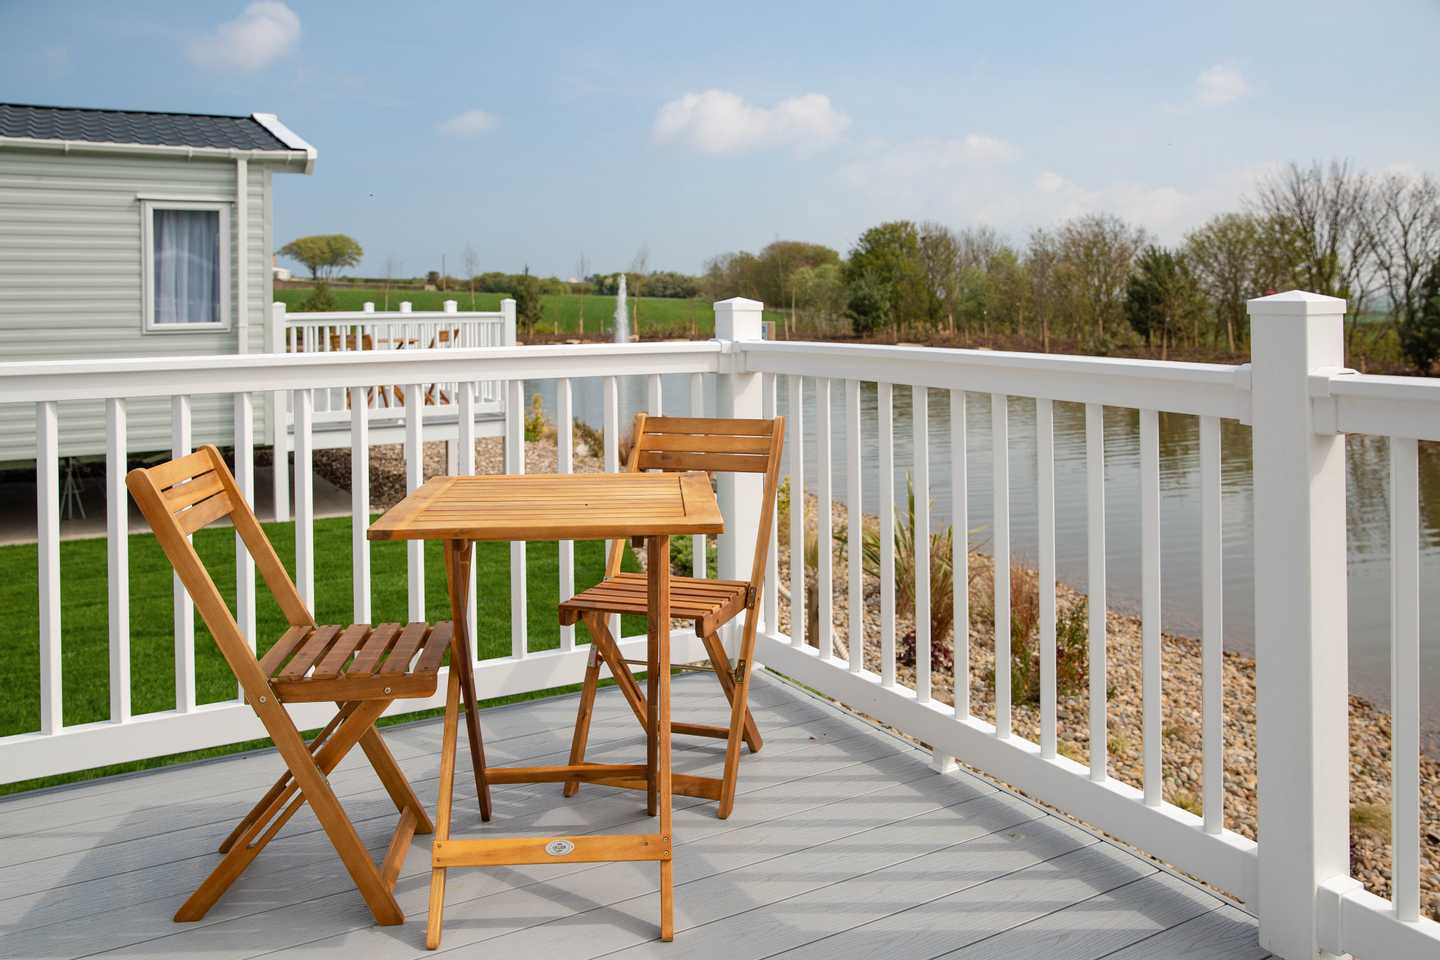 A stunning deck with table and chairs